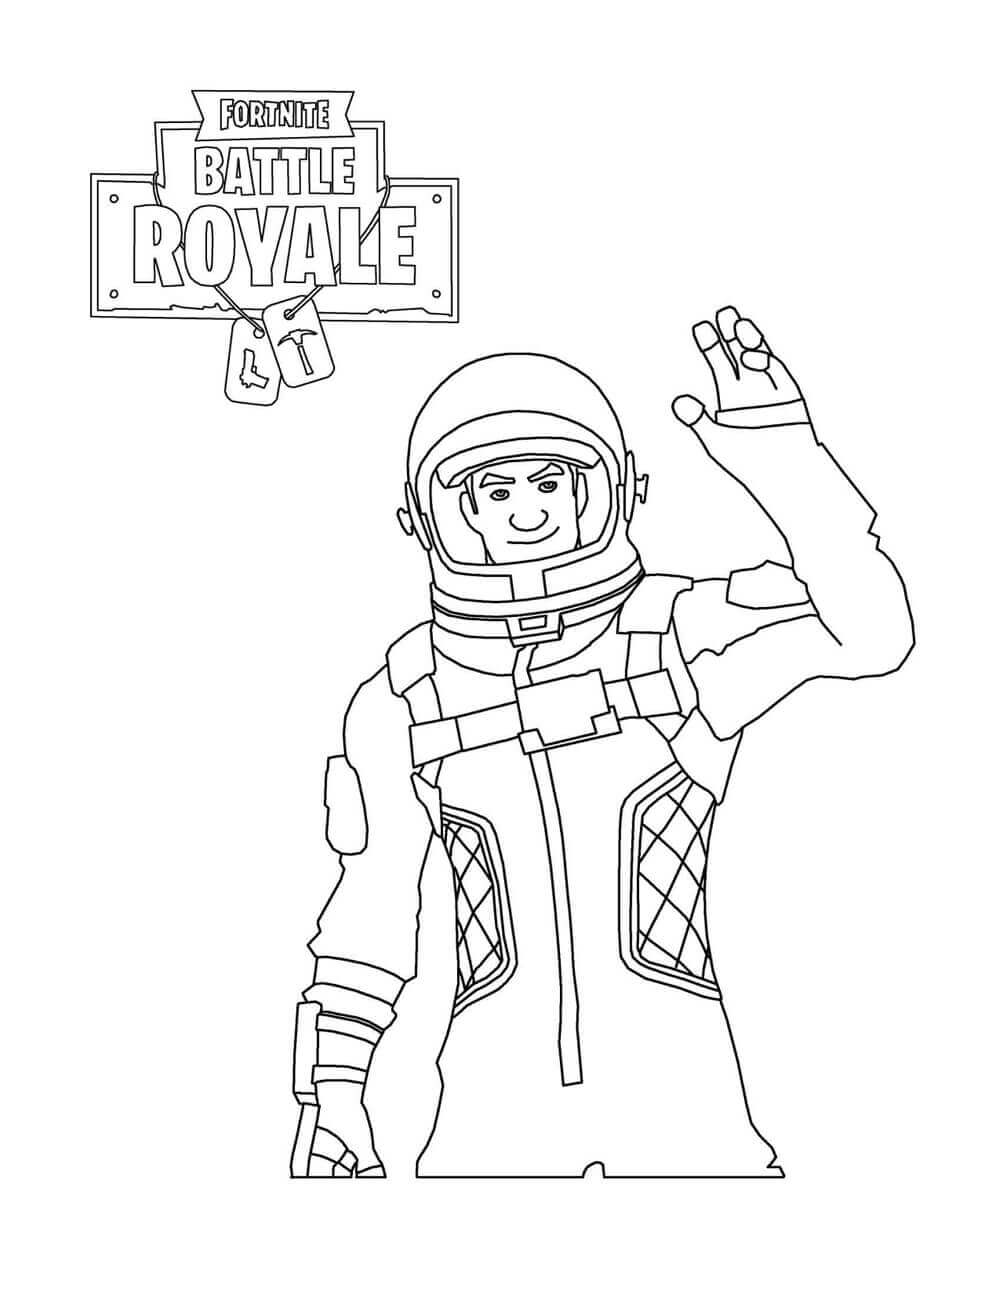 30 Free Printable Fortnite Coloring Pages Coloring Junction